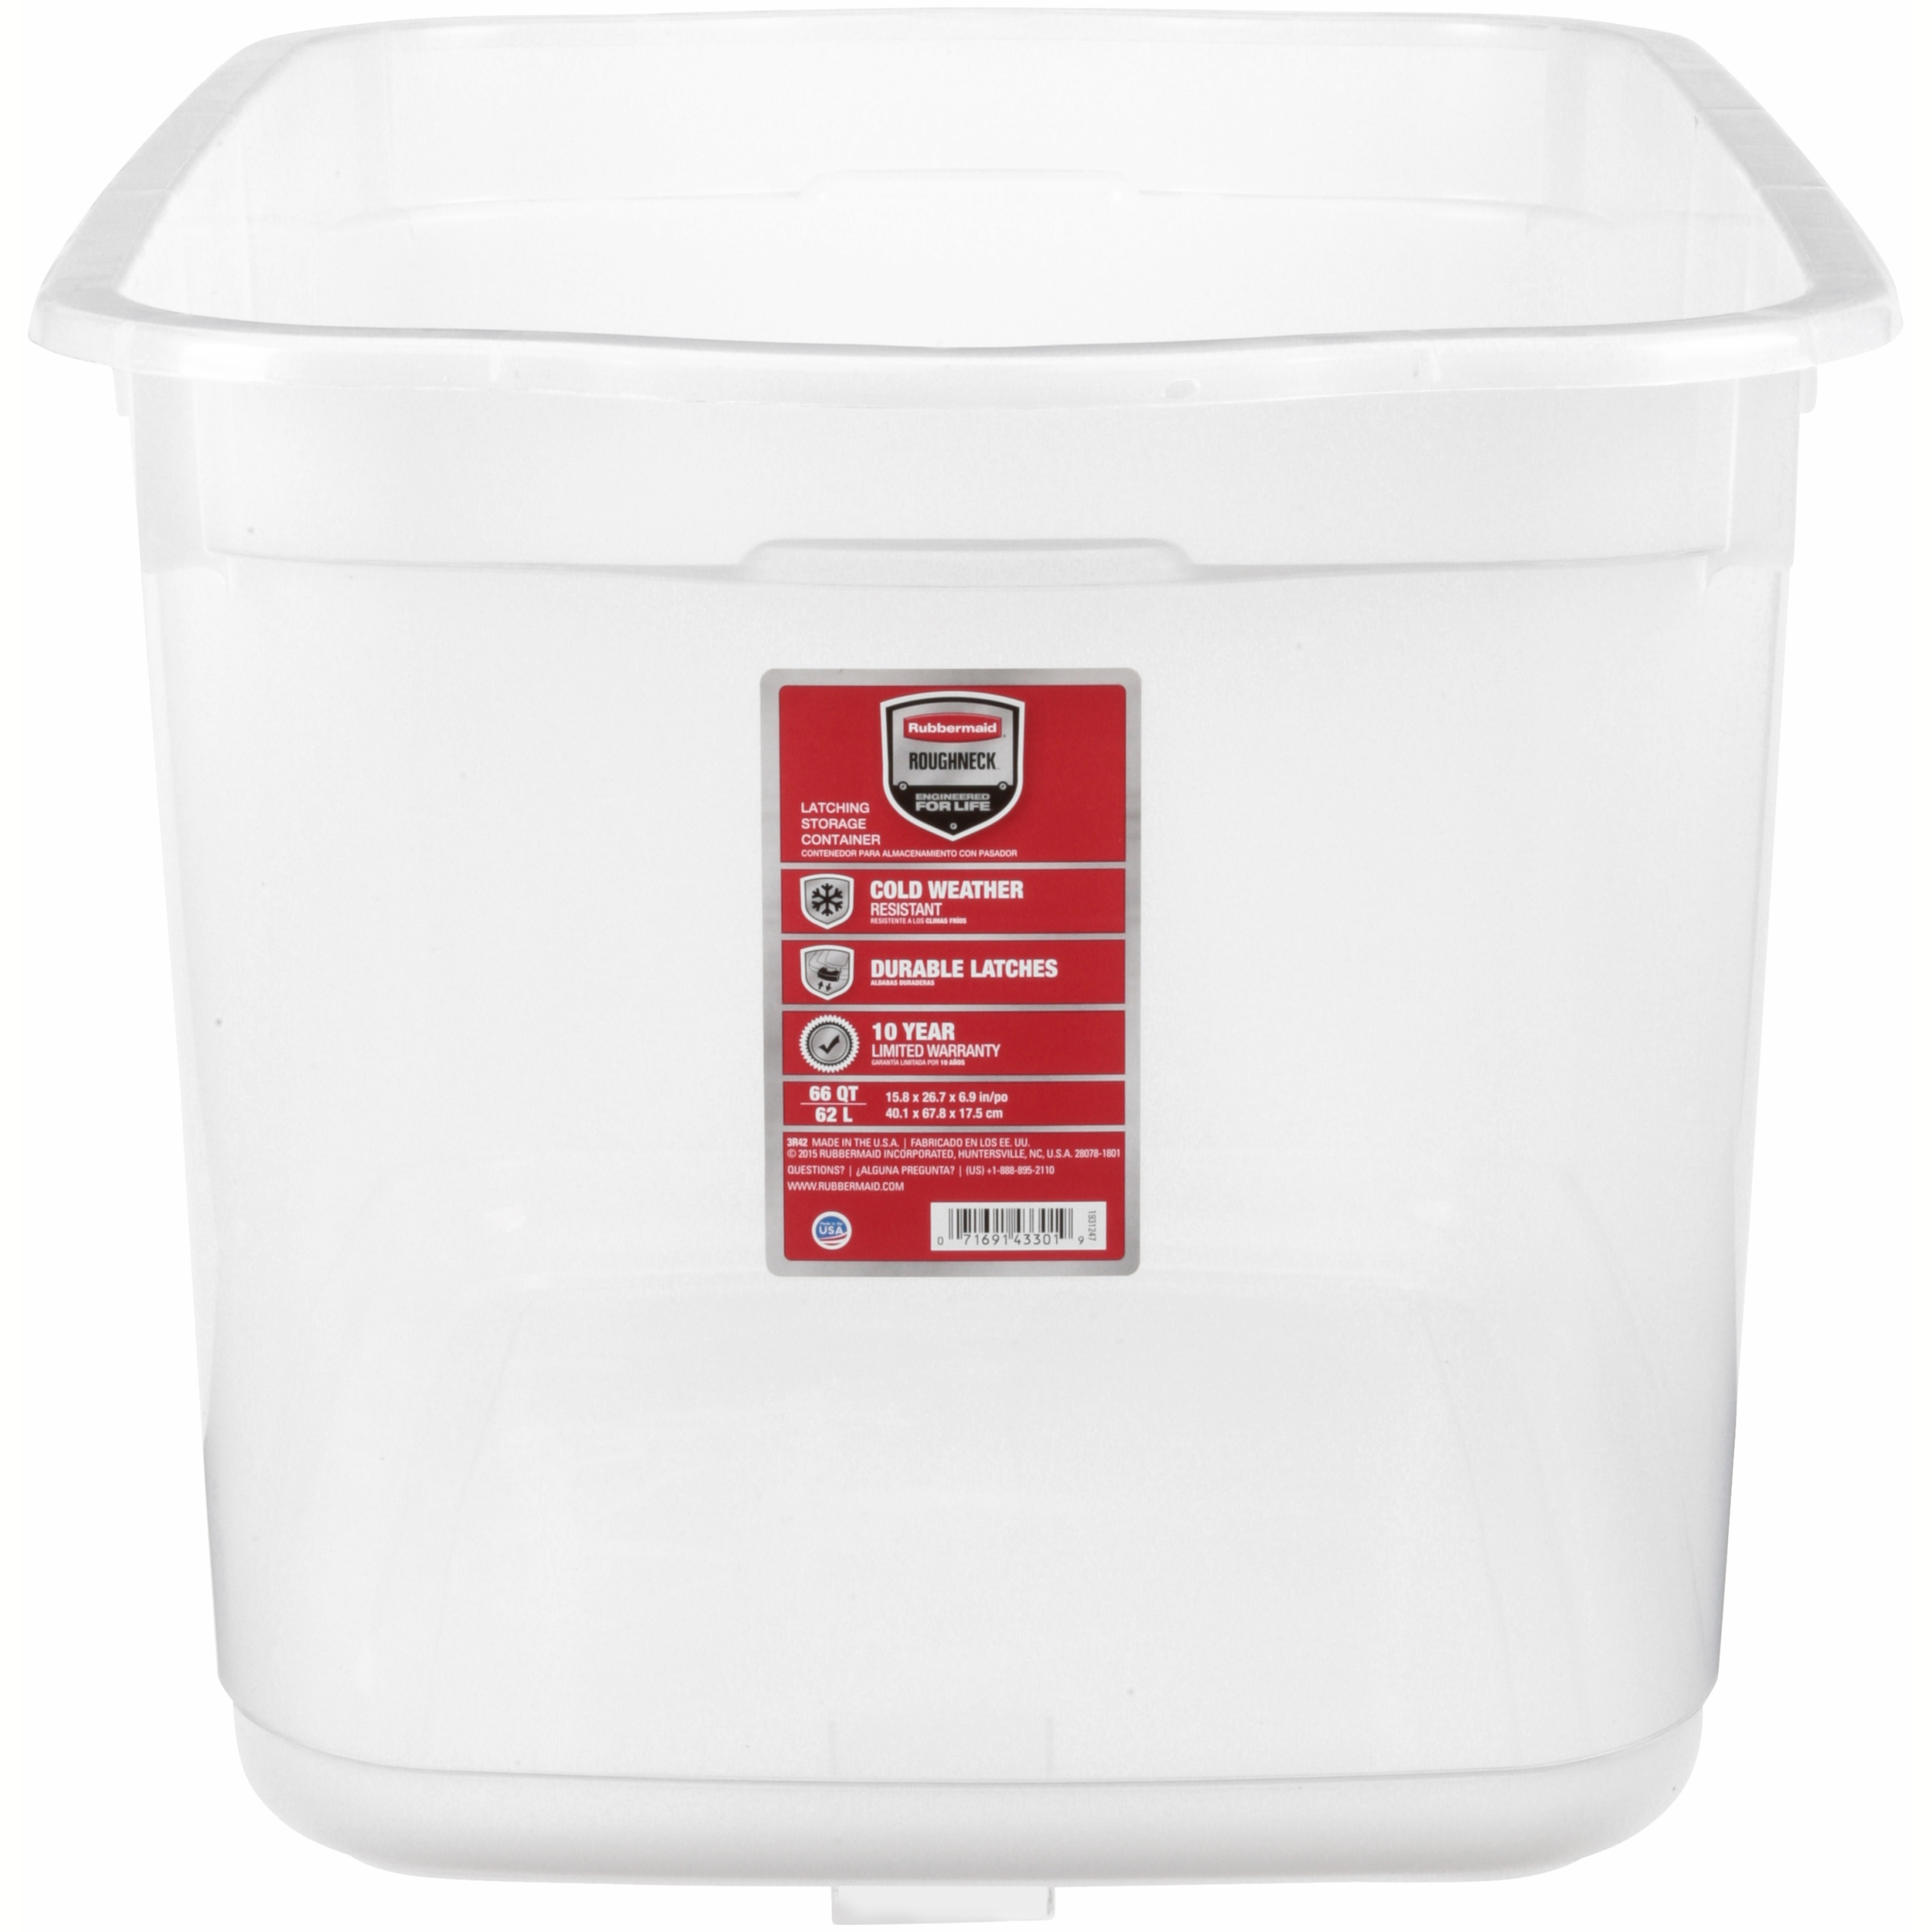 Rubbermaid Roughneck 66 Qt. (16.5 Gal) Clear Storage Tote Bin Clear with Blue Lid - Walmart.com  sc 1 st  Walmart : plastic storage boxes with wheels  - Aquiesqueretaro.Com